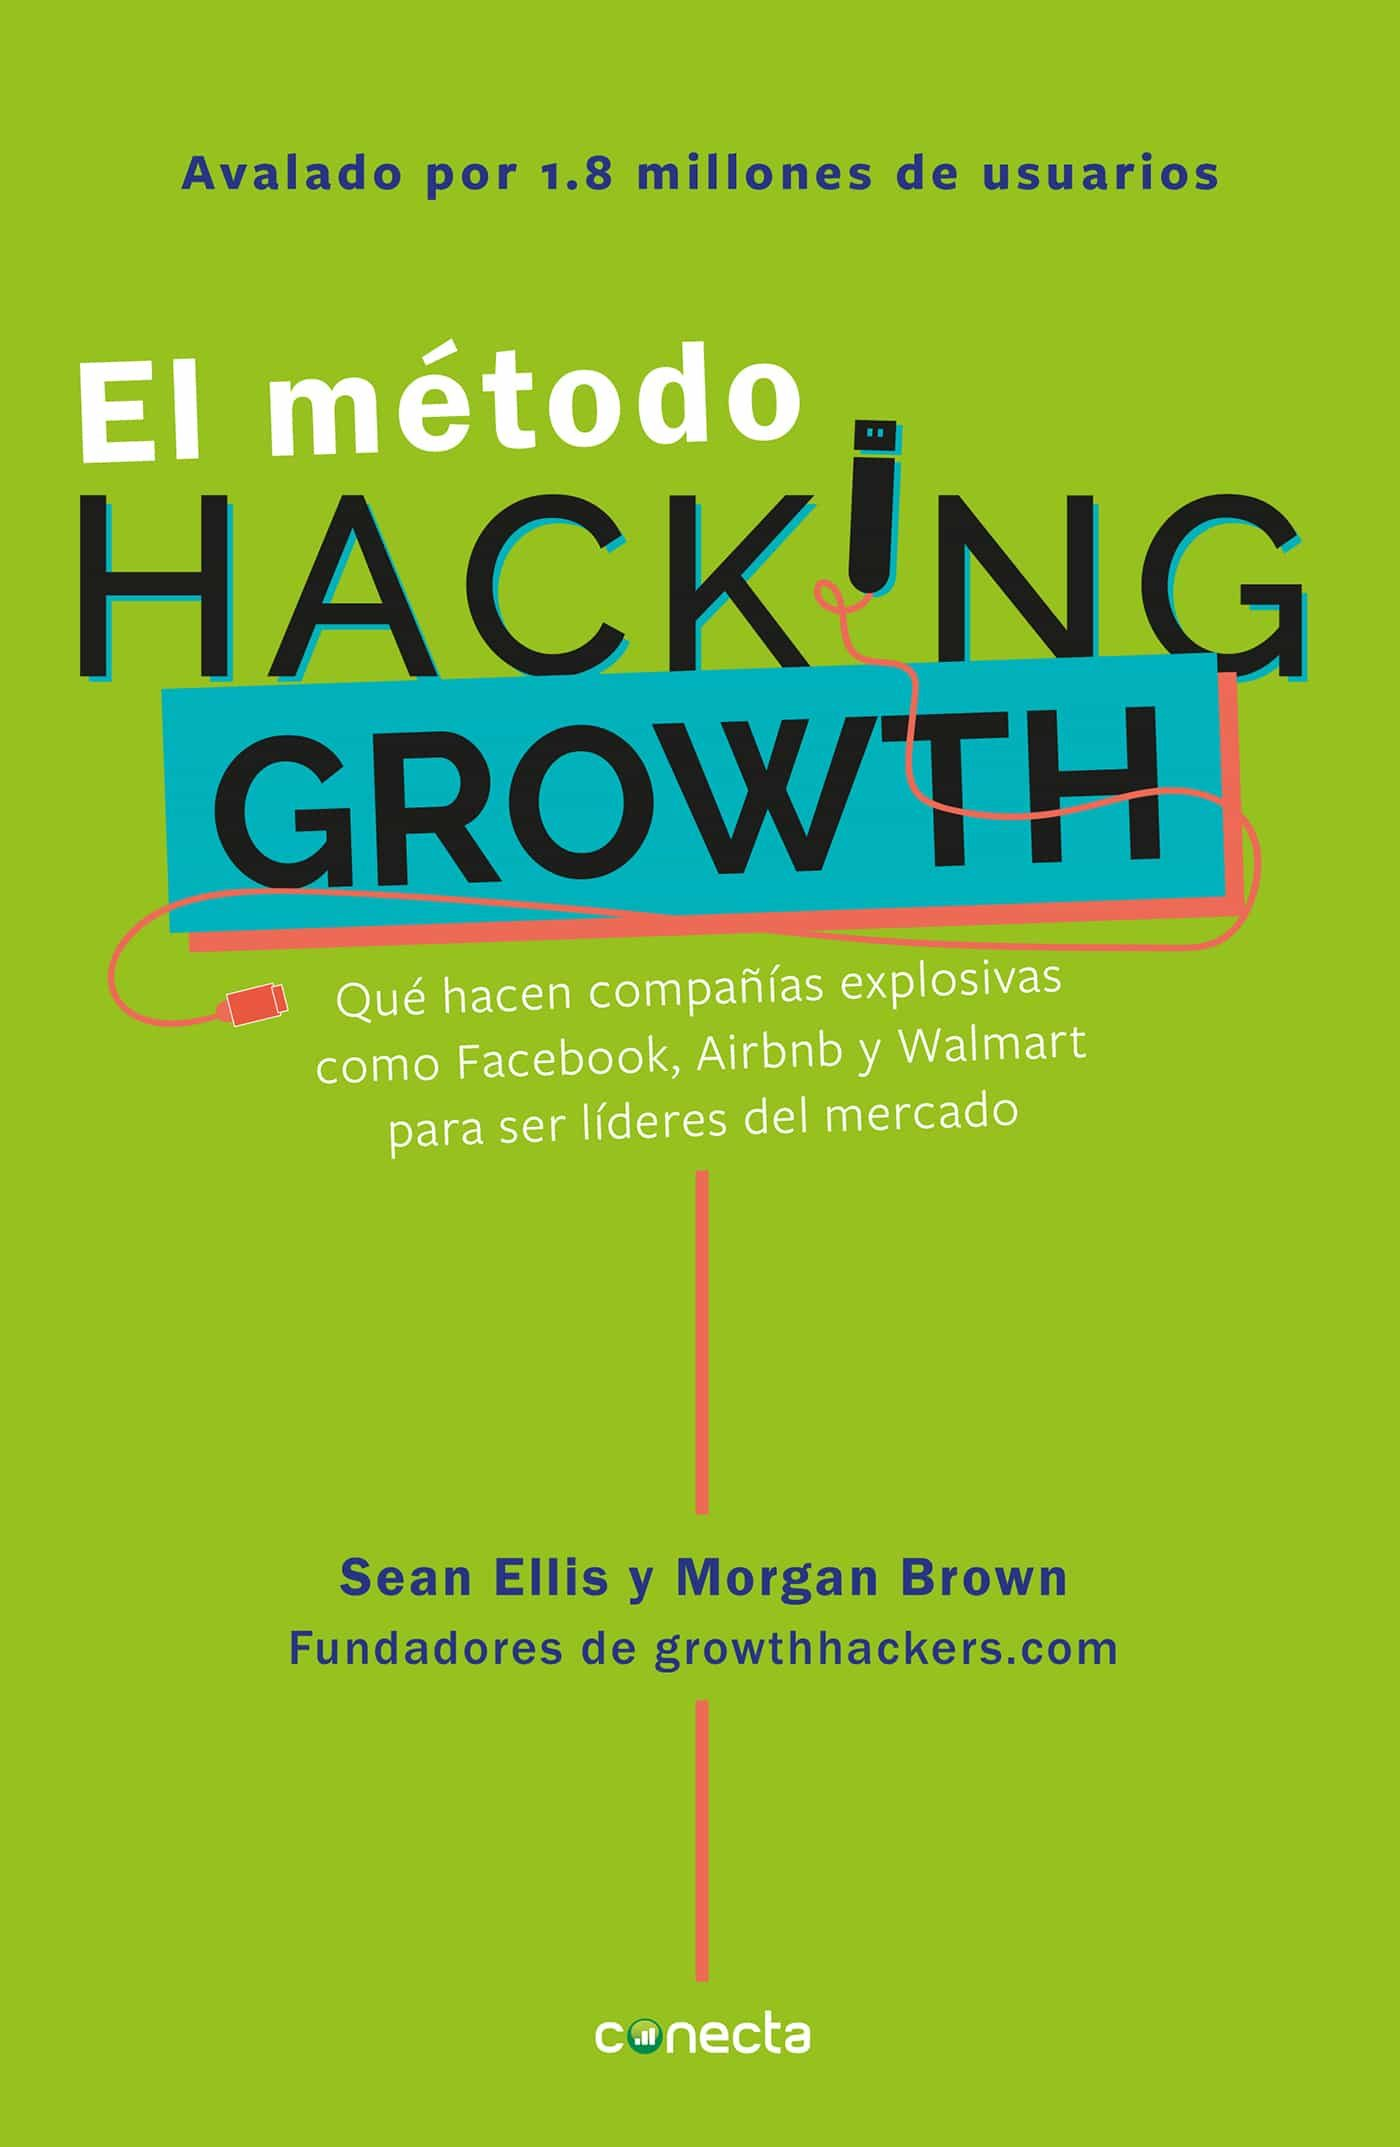 Descargar Libro El Metodo El MÉtodo Hacking Growth Ebook Sean Ellis Descargar